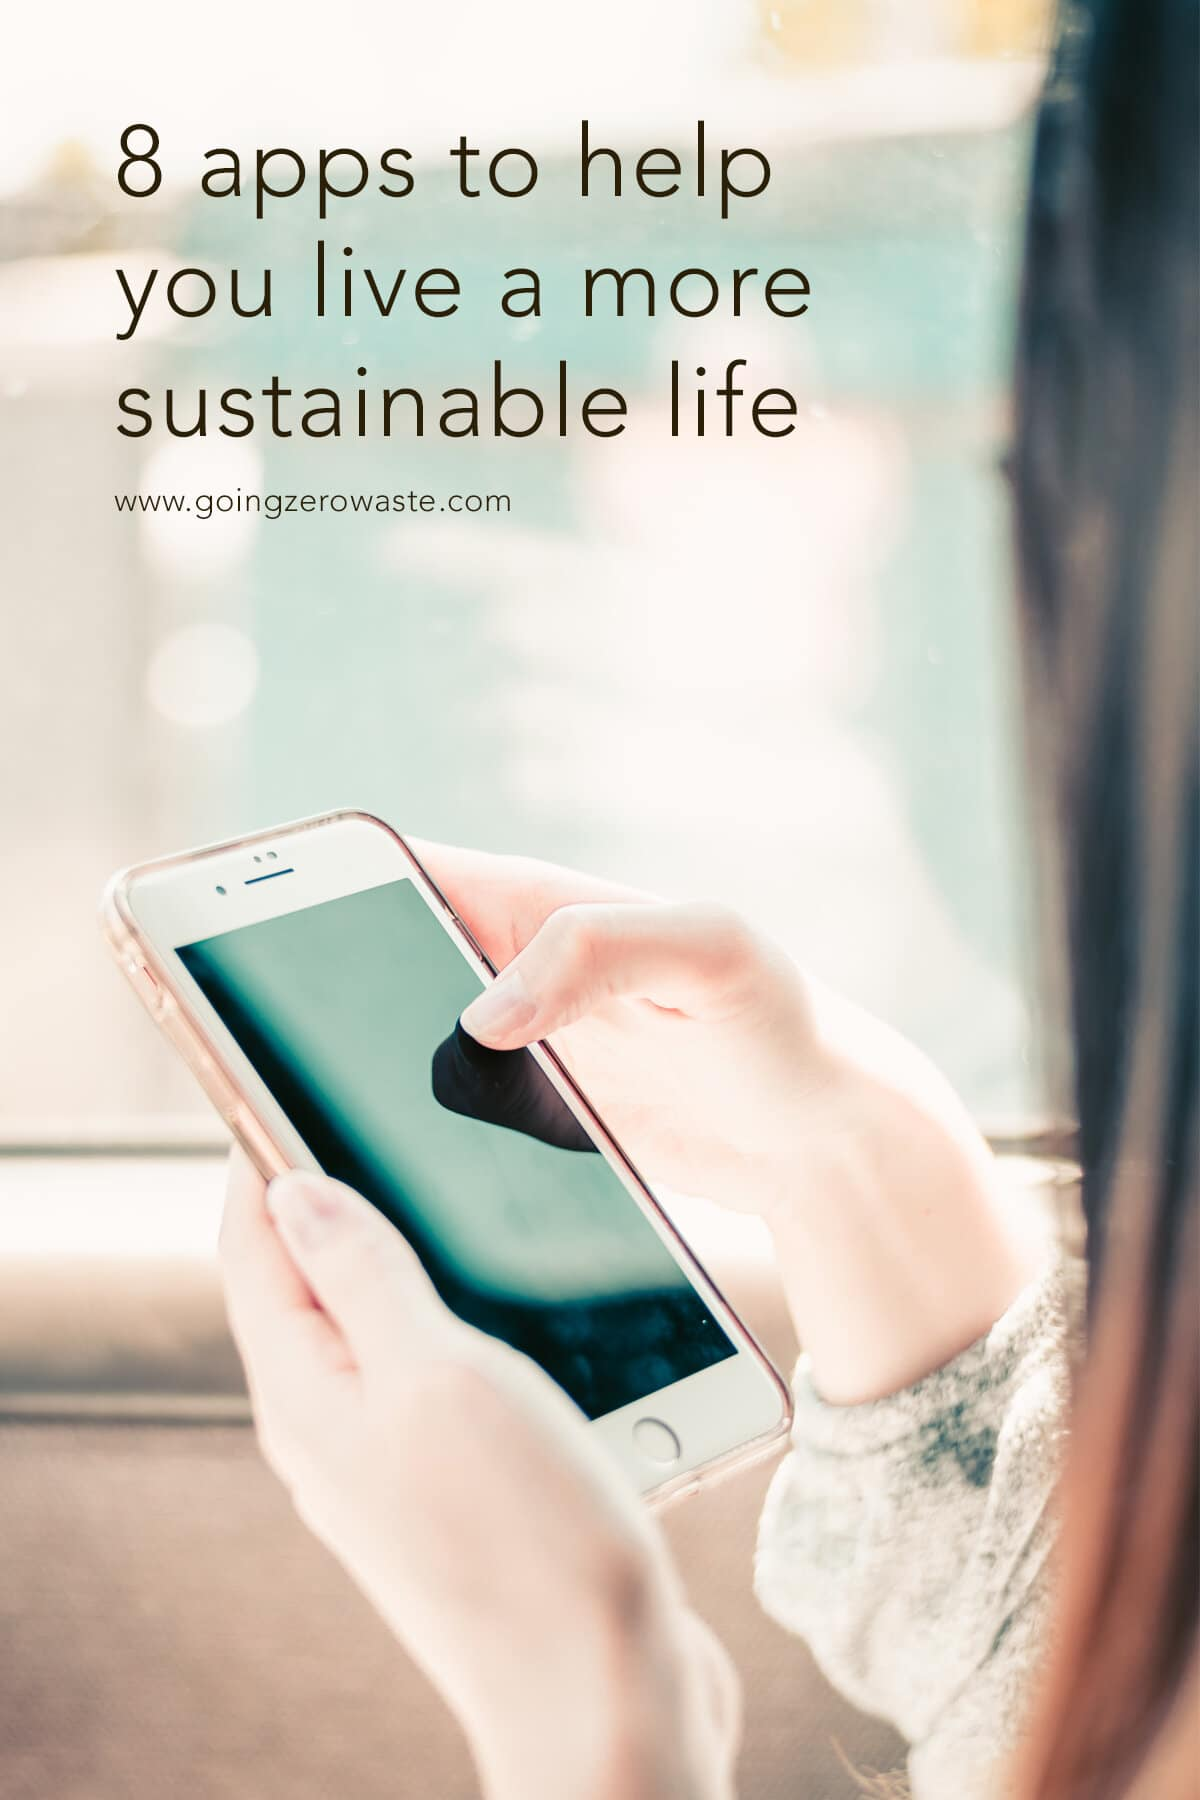 8 Apps to Help You Live a More Sustainable Life